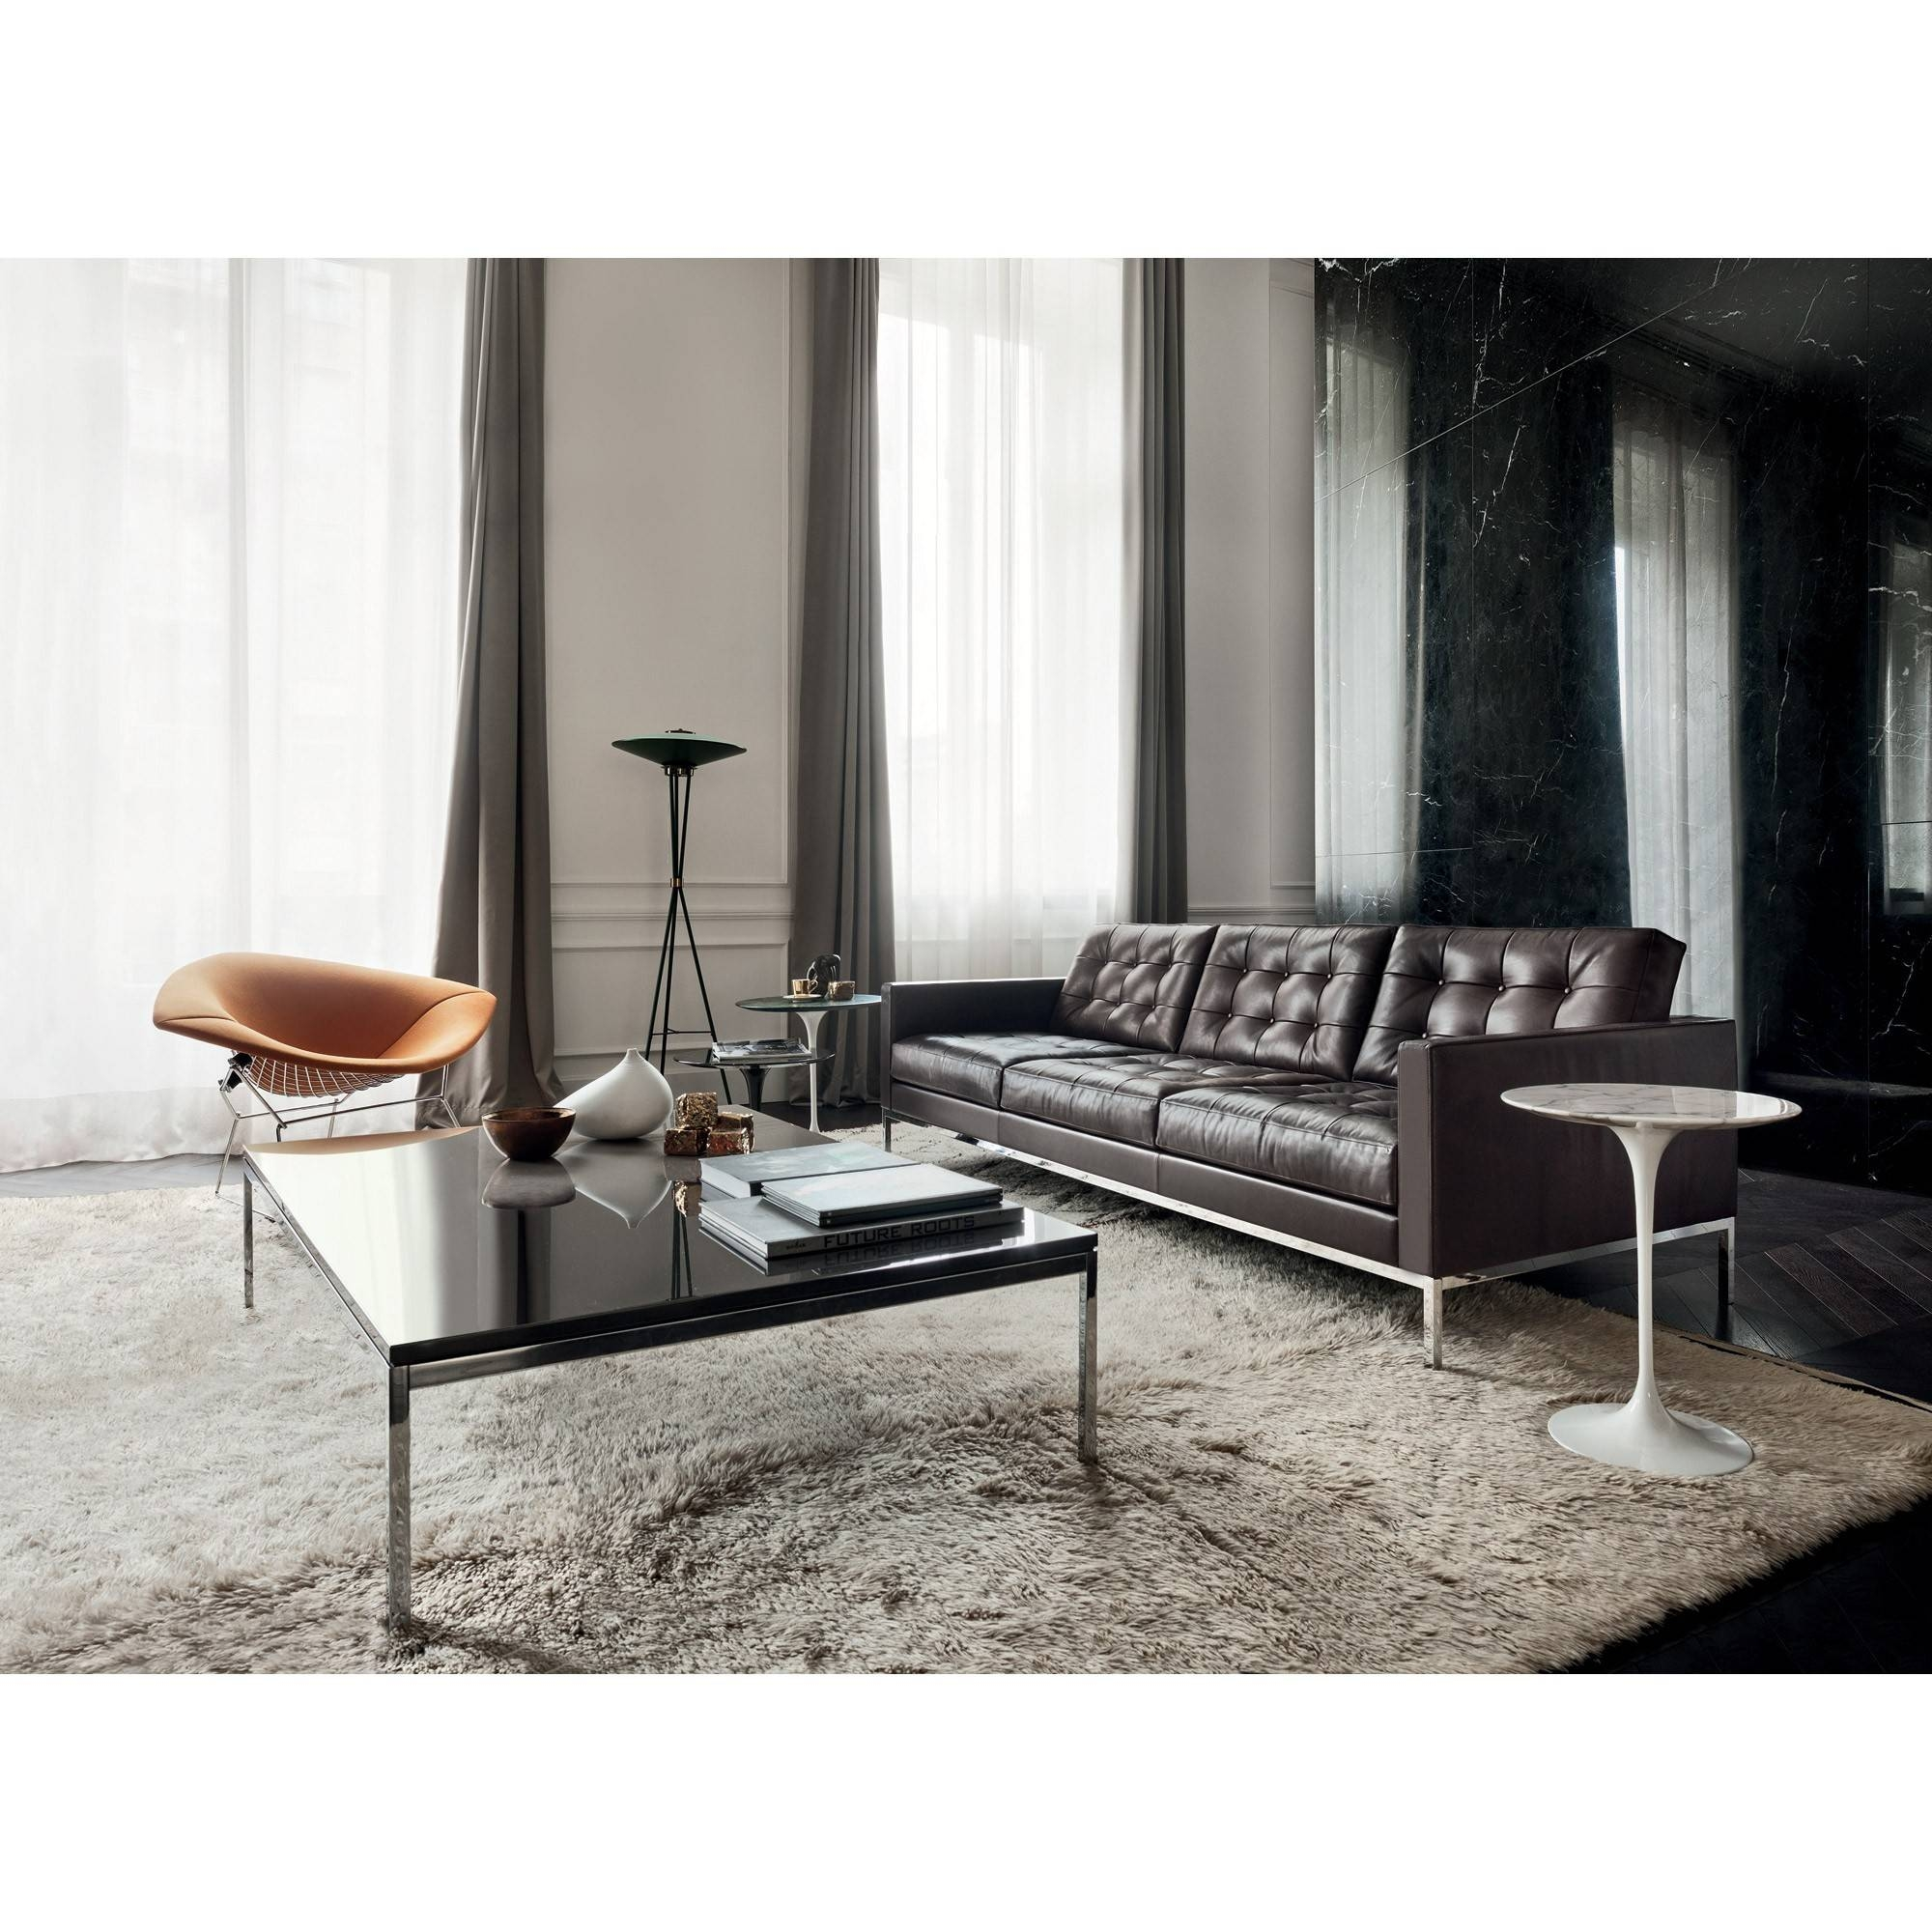 Florence Knoll 'relax' Sofa | Skandium within Florence Sofas (Image 7 of 30)